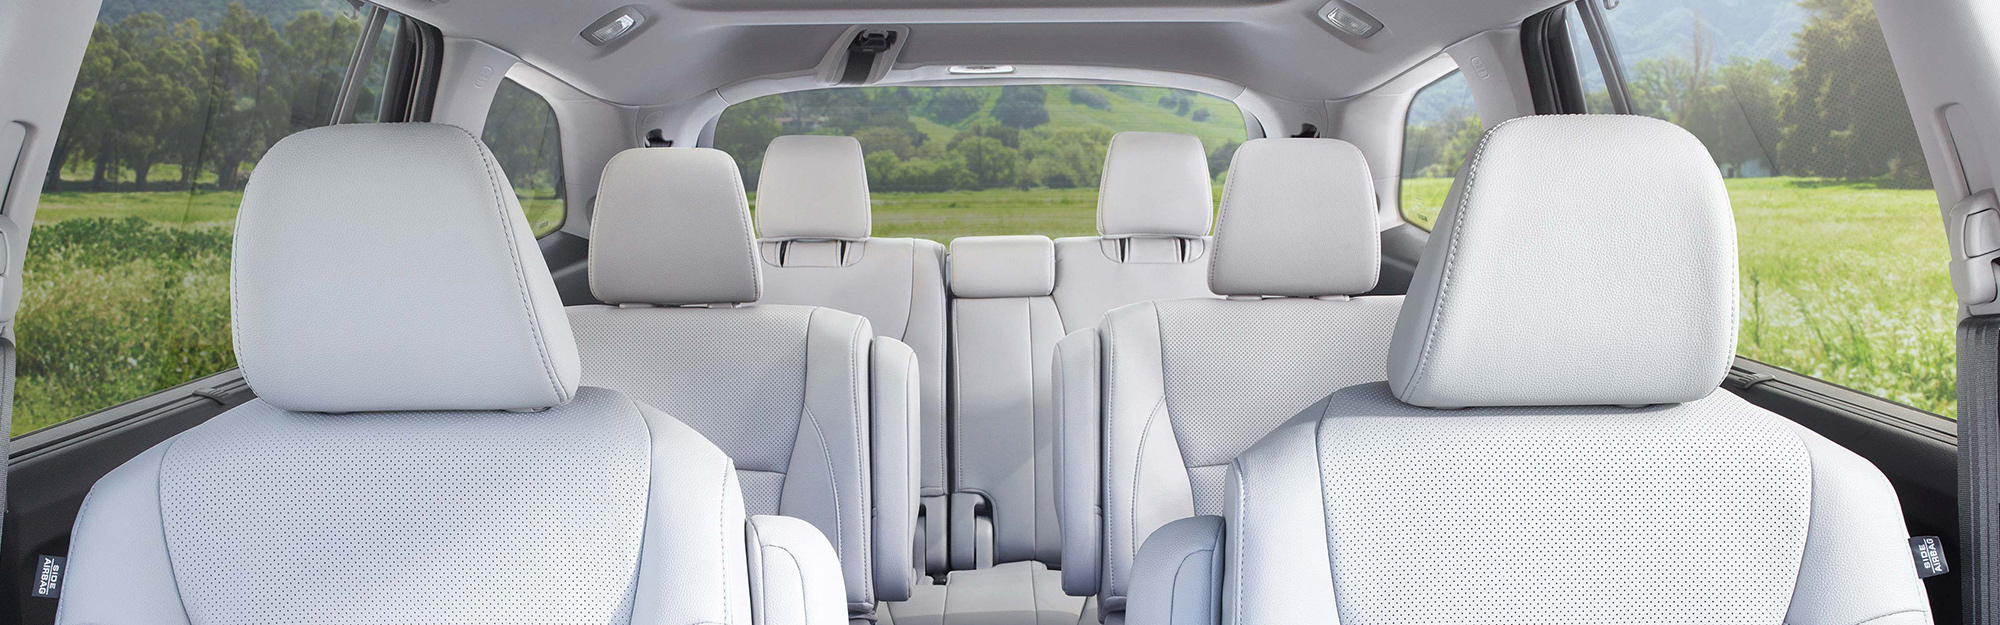 The comfy, stylish interior of the 2019 Honda Pilot.